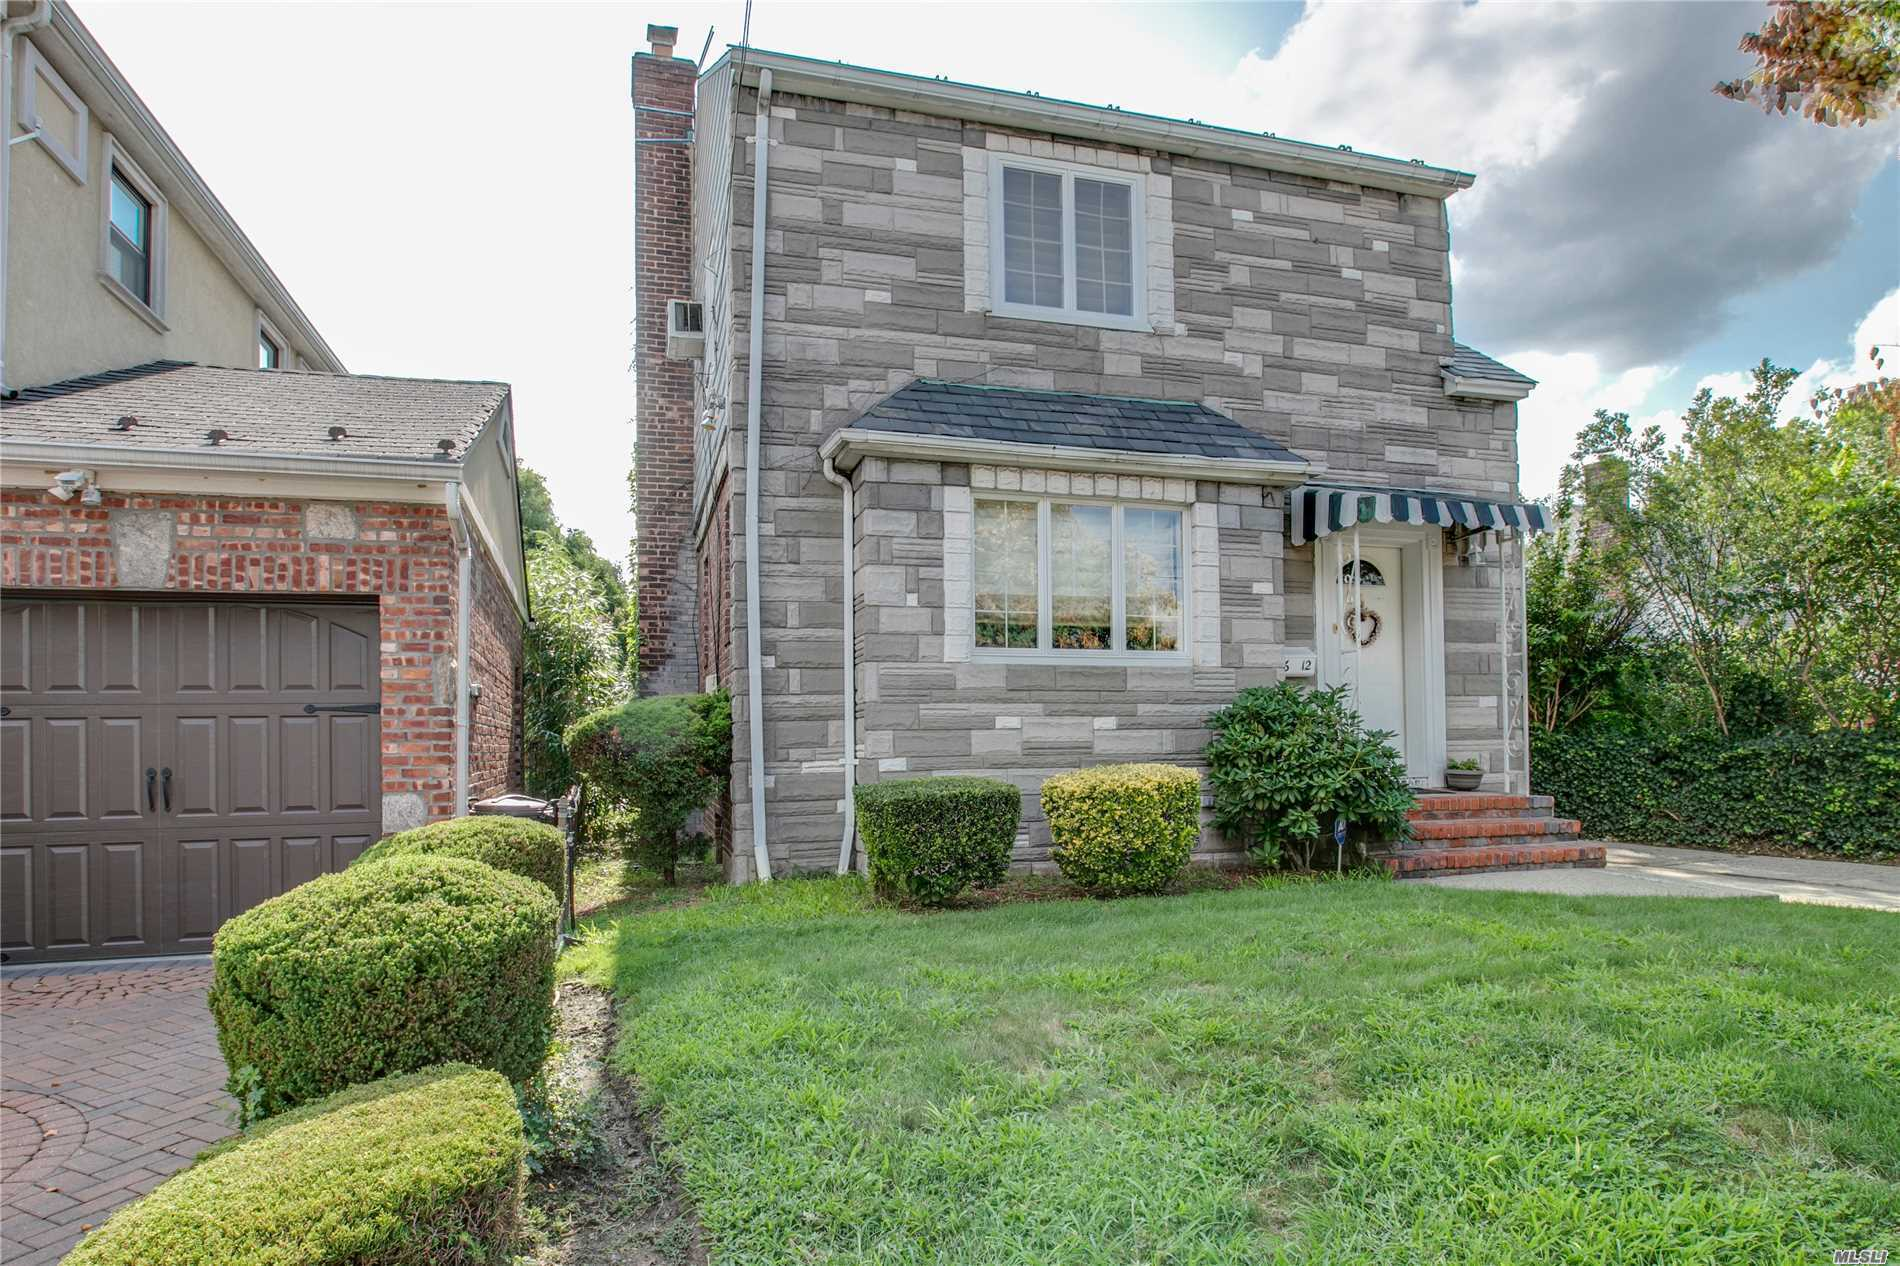 Detached Colonial In Prime Bayside Location. Features Updated Eat-In Kitchen, Den, Living Room And 3 Bedrooms. Vaulted Ceiling In Master Bedroom. Park-Like Oversize Backyard 40x142 Lot. Ps159, Is25, Bayside High School. QM20 Express Bus To Manhattan One Block Away.